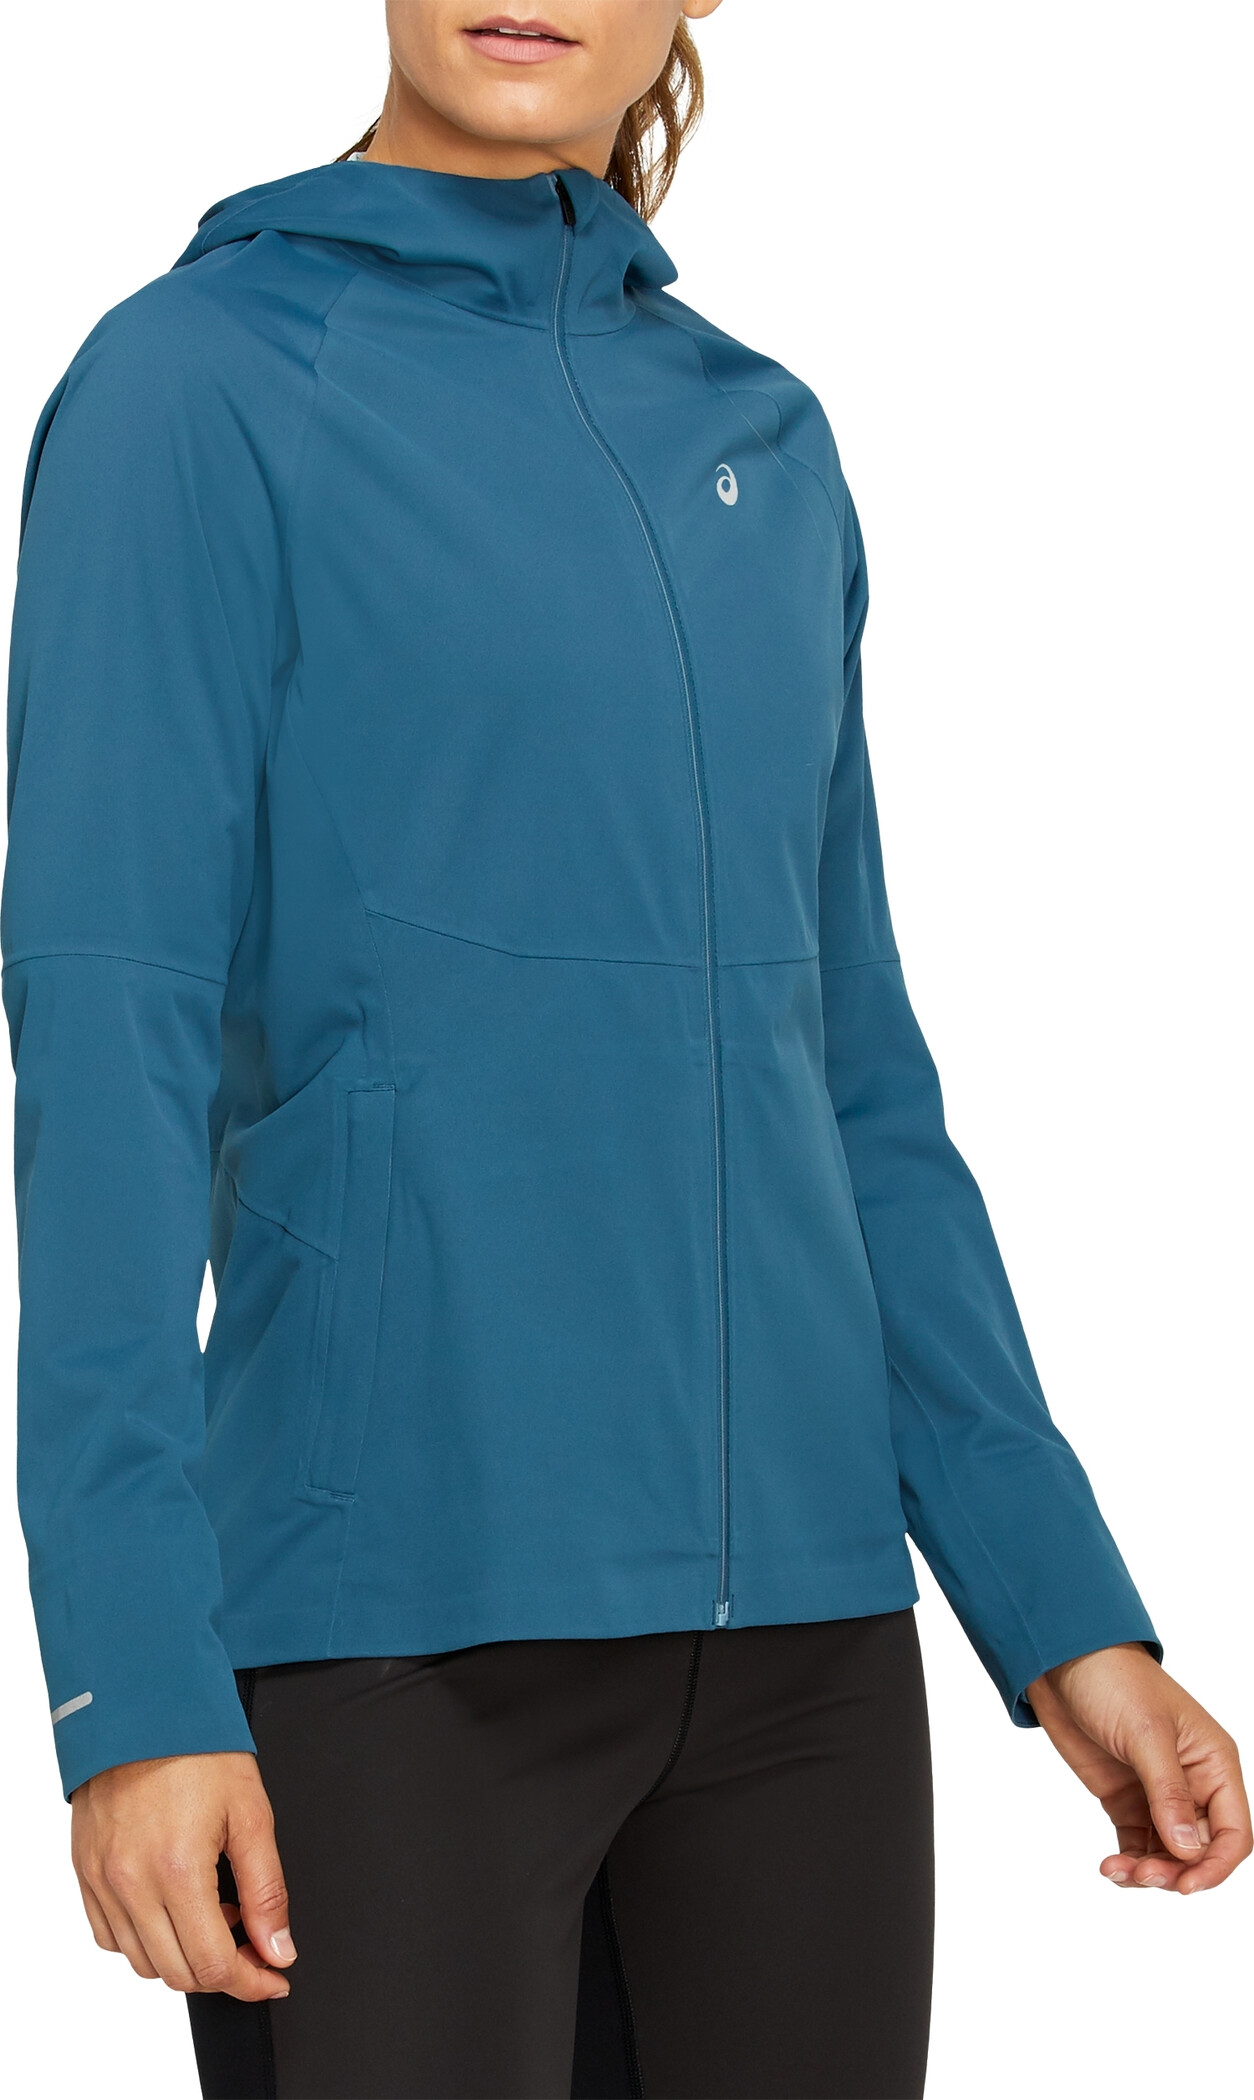 asics Accelerate Jacke Damen magnetic blue